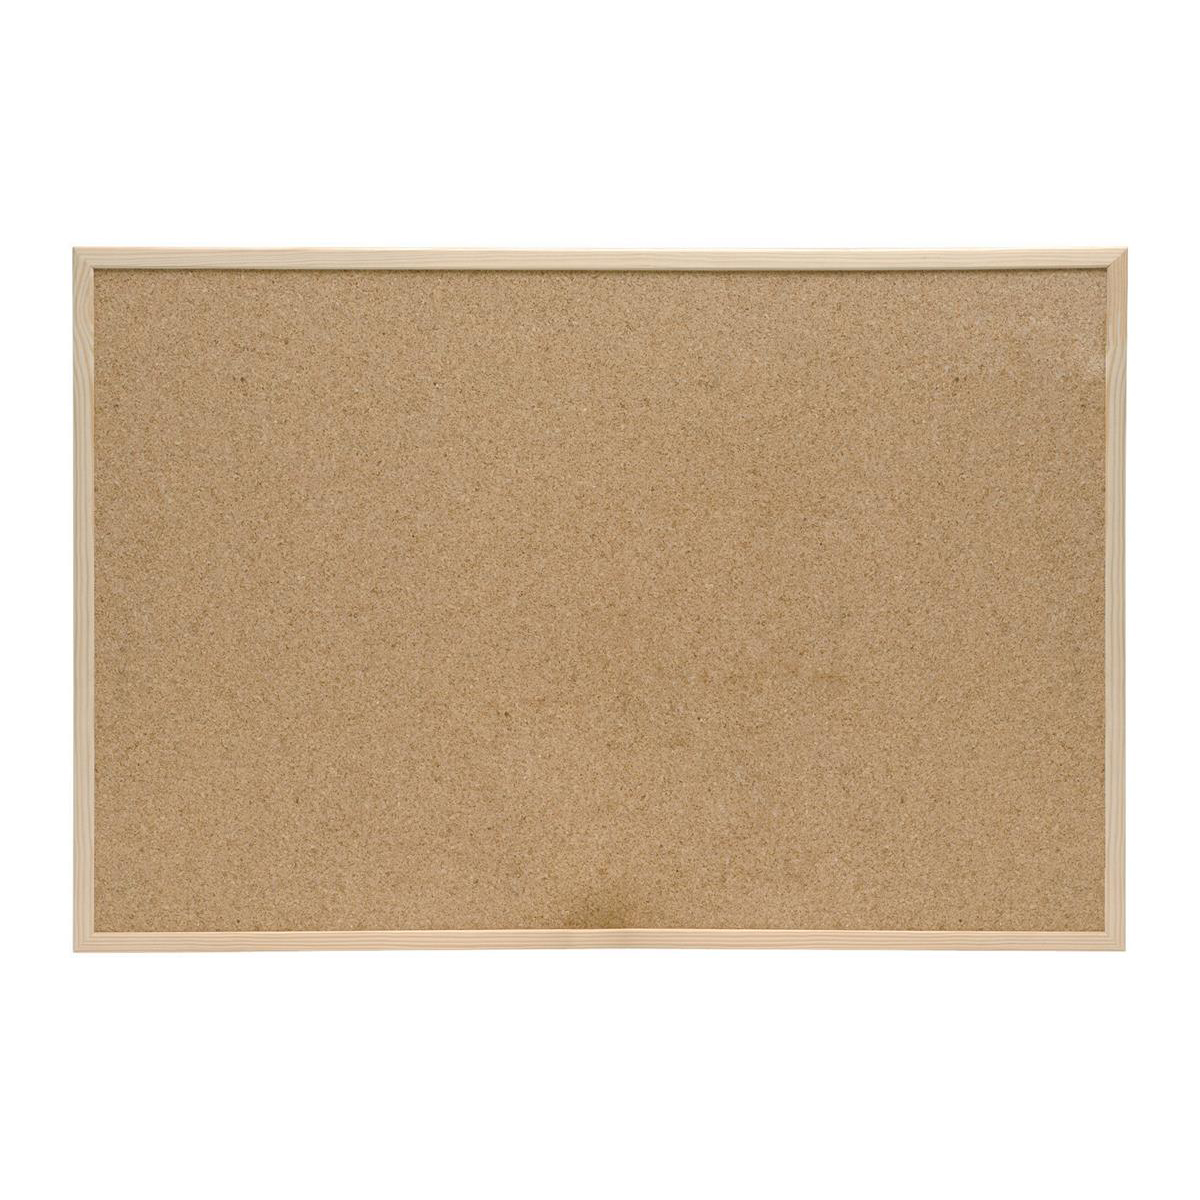 5 Star Eco Noticeboard Cork with Pine Frame W1200xH900mm